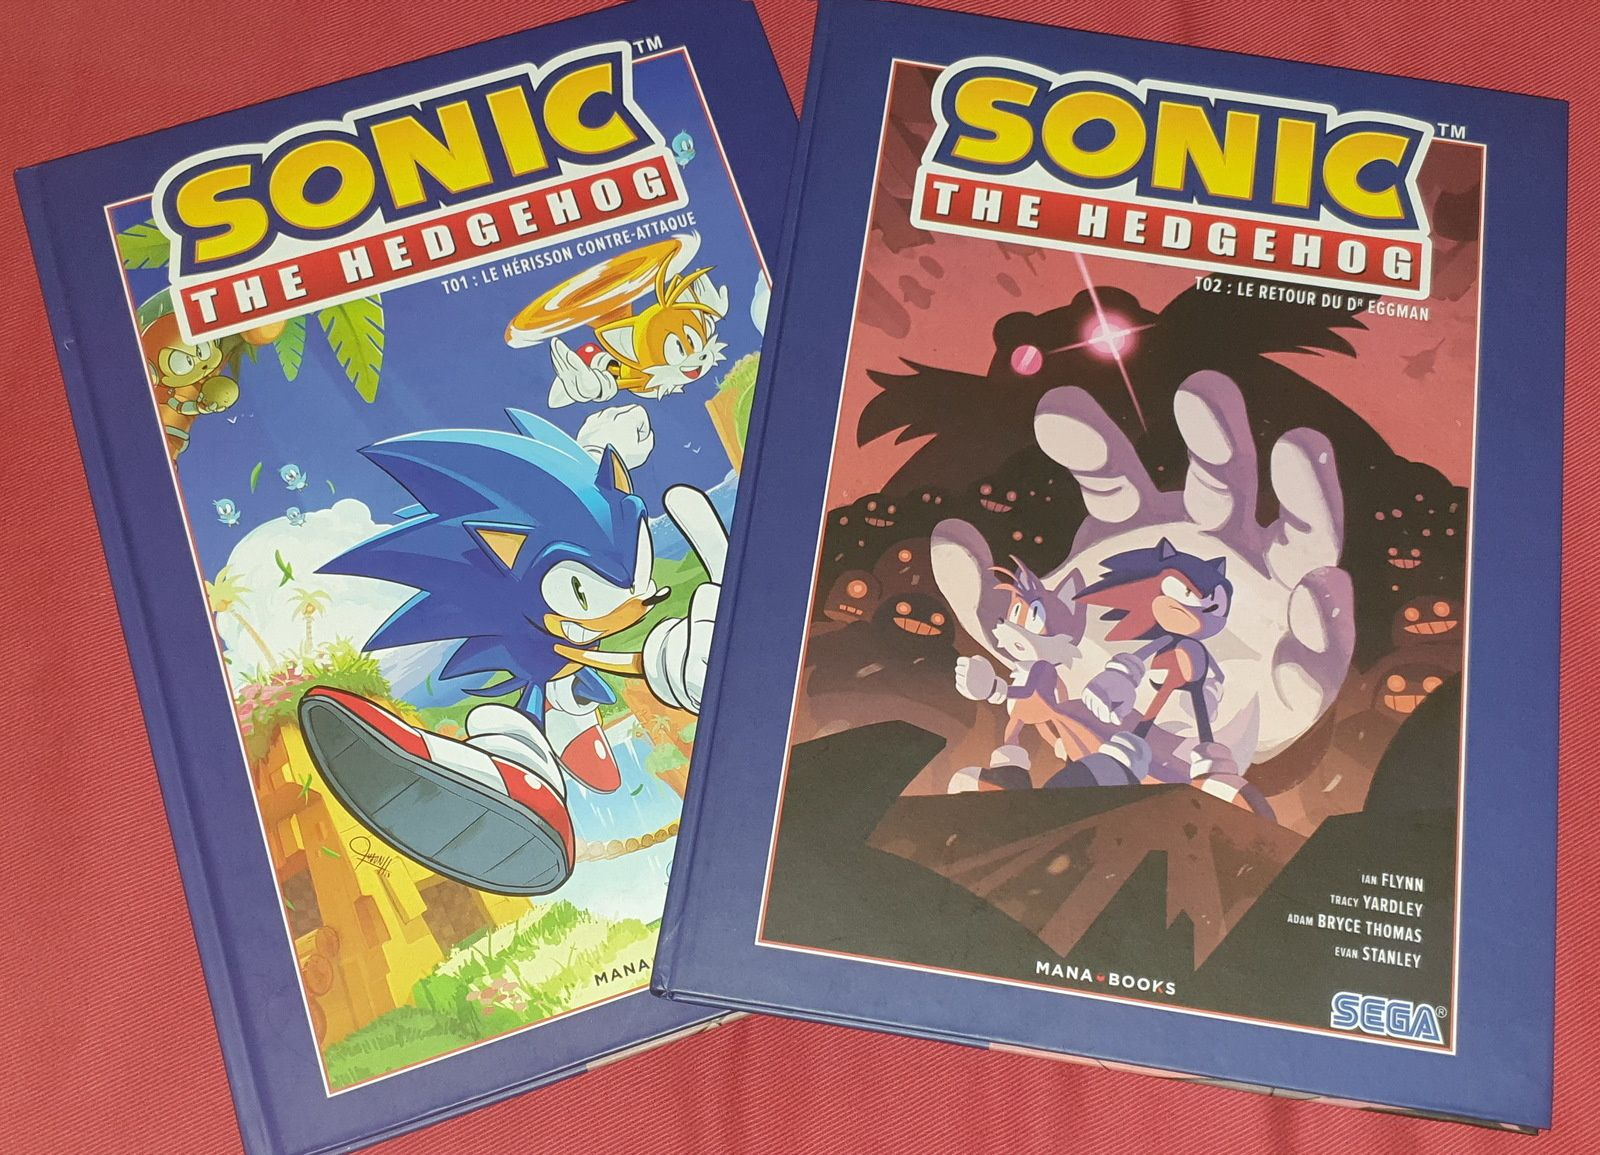 [REVUE COMICS GAMING] SONIC THE HEDGEHOG TOME 1 & 2 aux éditions MANA BOOKS